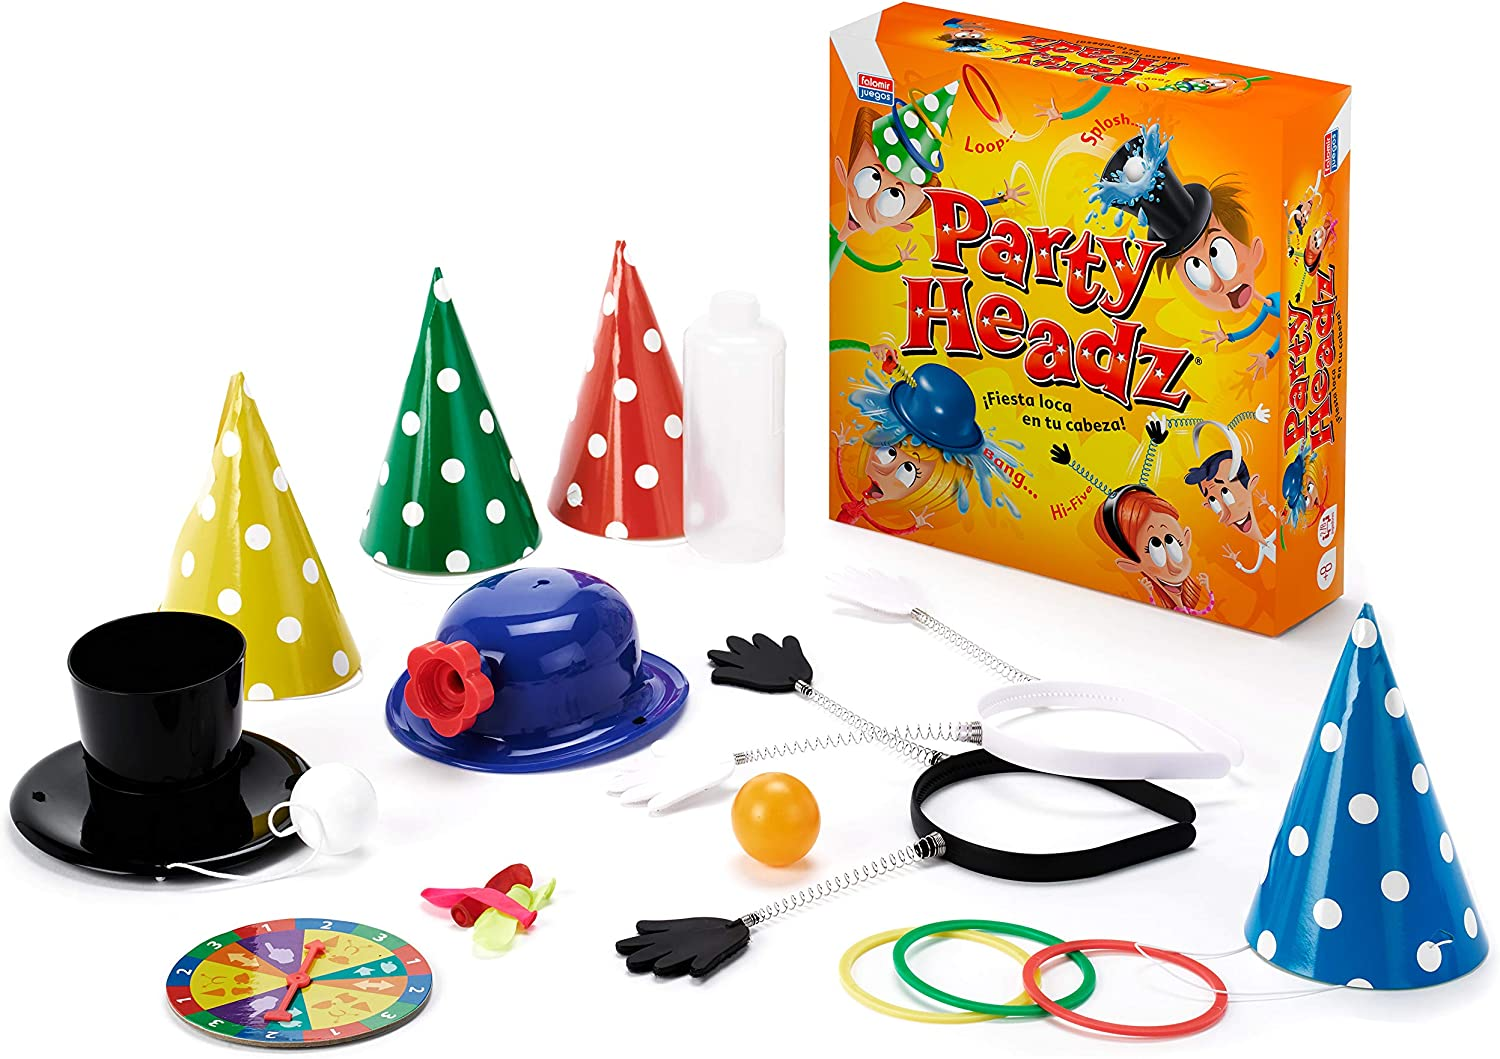 Falomir Party Headz, Juego de Mesa, Habilidad, Color Amarillo ...